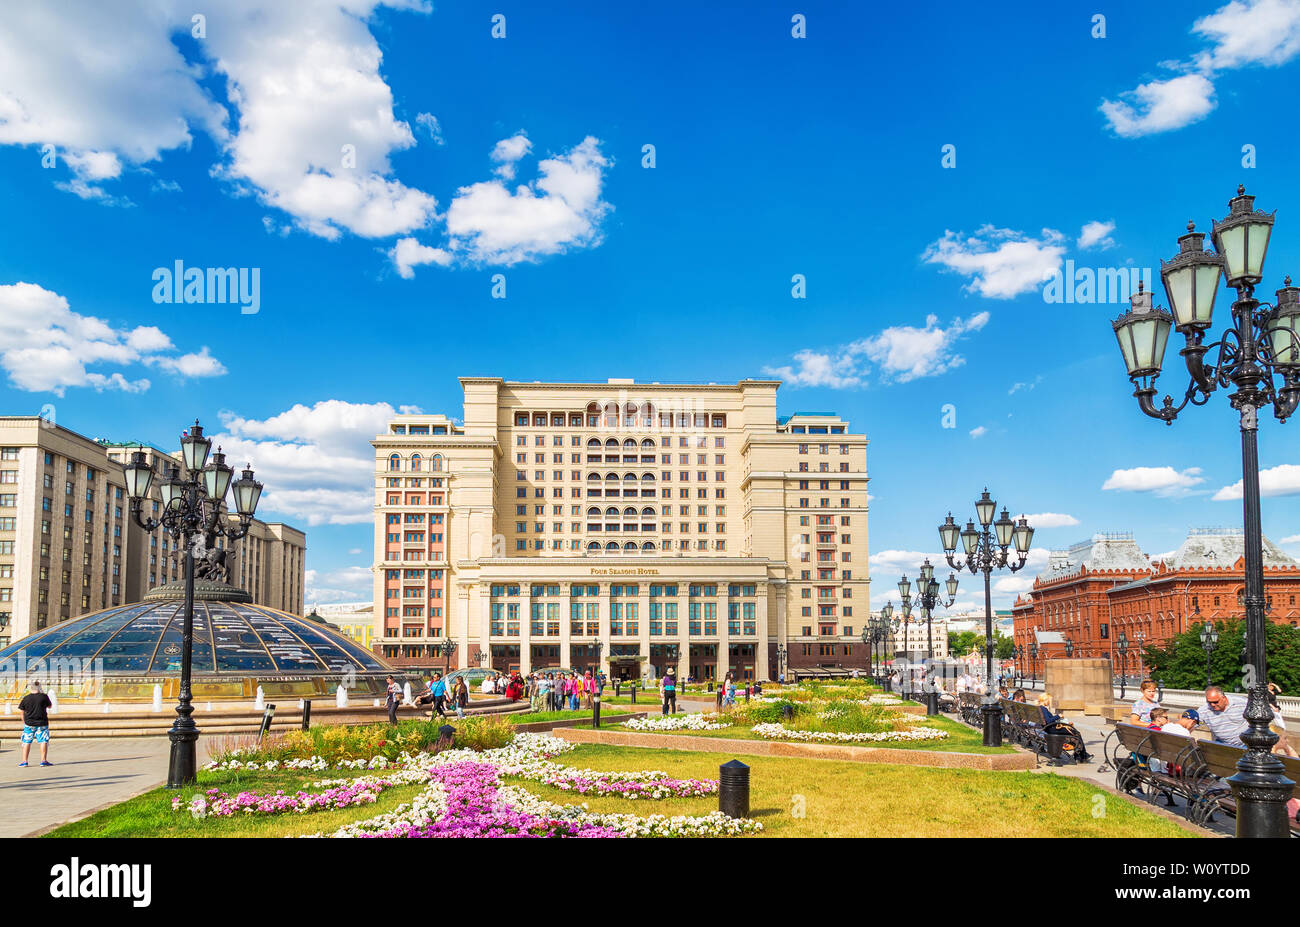 Moscow, Russia - June 24, 2019: The Four Seasons Hotel Moscow is a modern hotel in Manezhnaya Square. A facade is replicated the historic Hotel Moskva - Stock Image